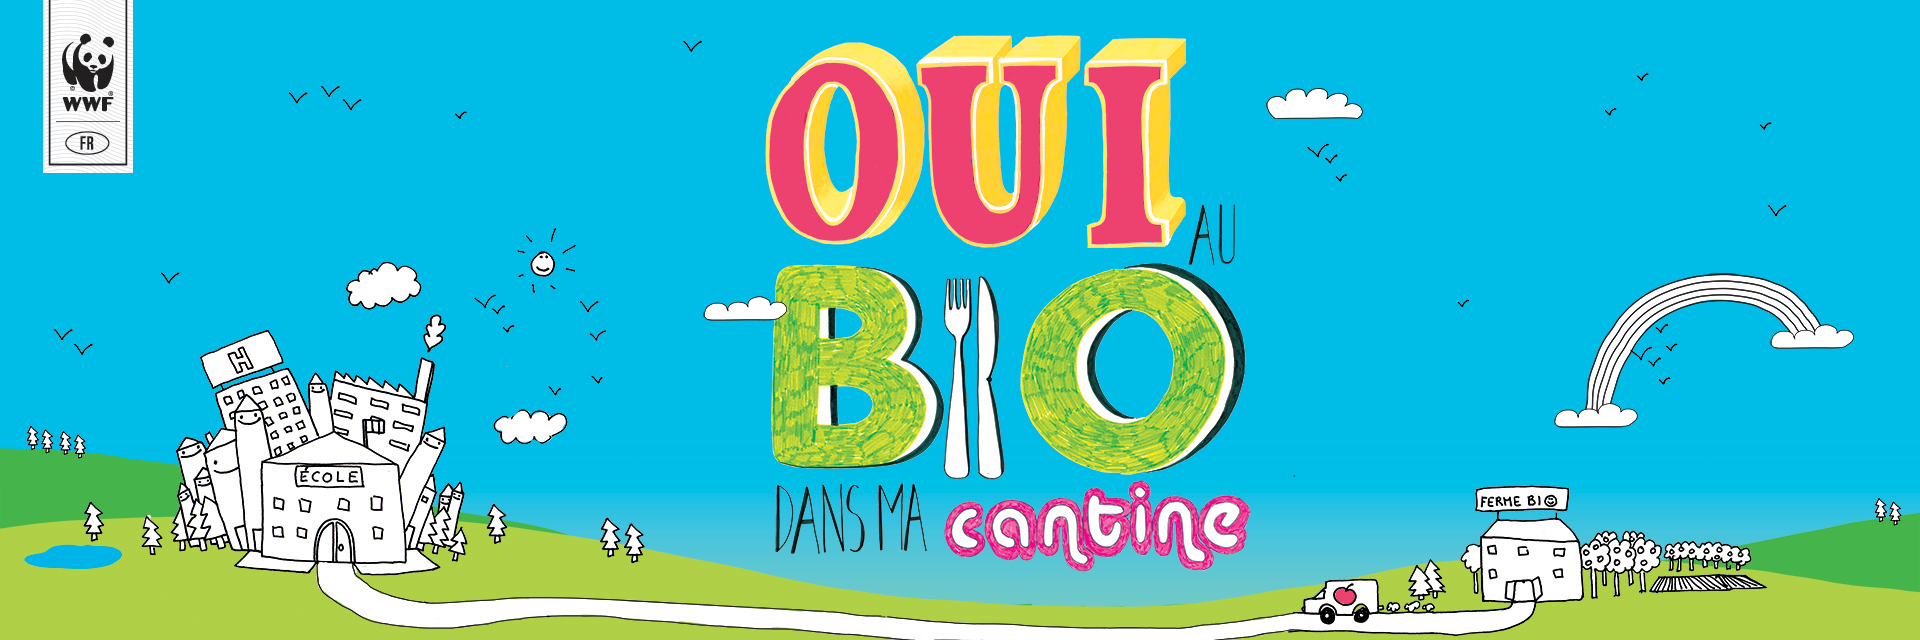 WWF_OUI-AU-BIO-website-img